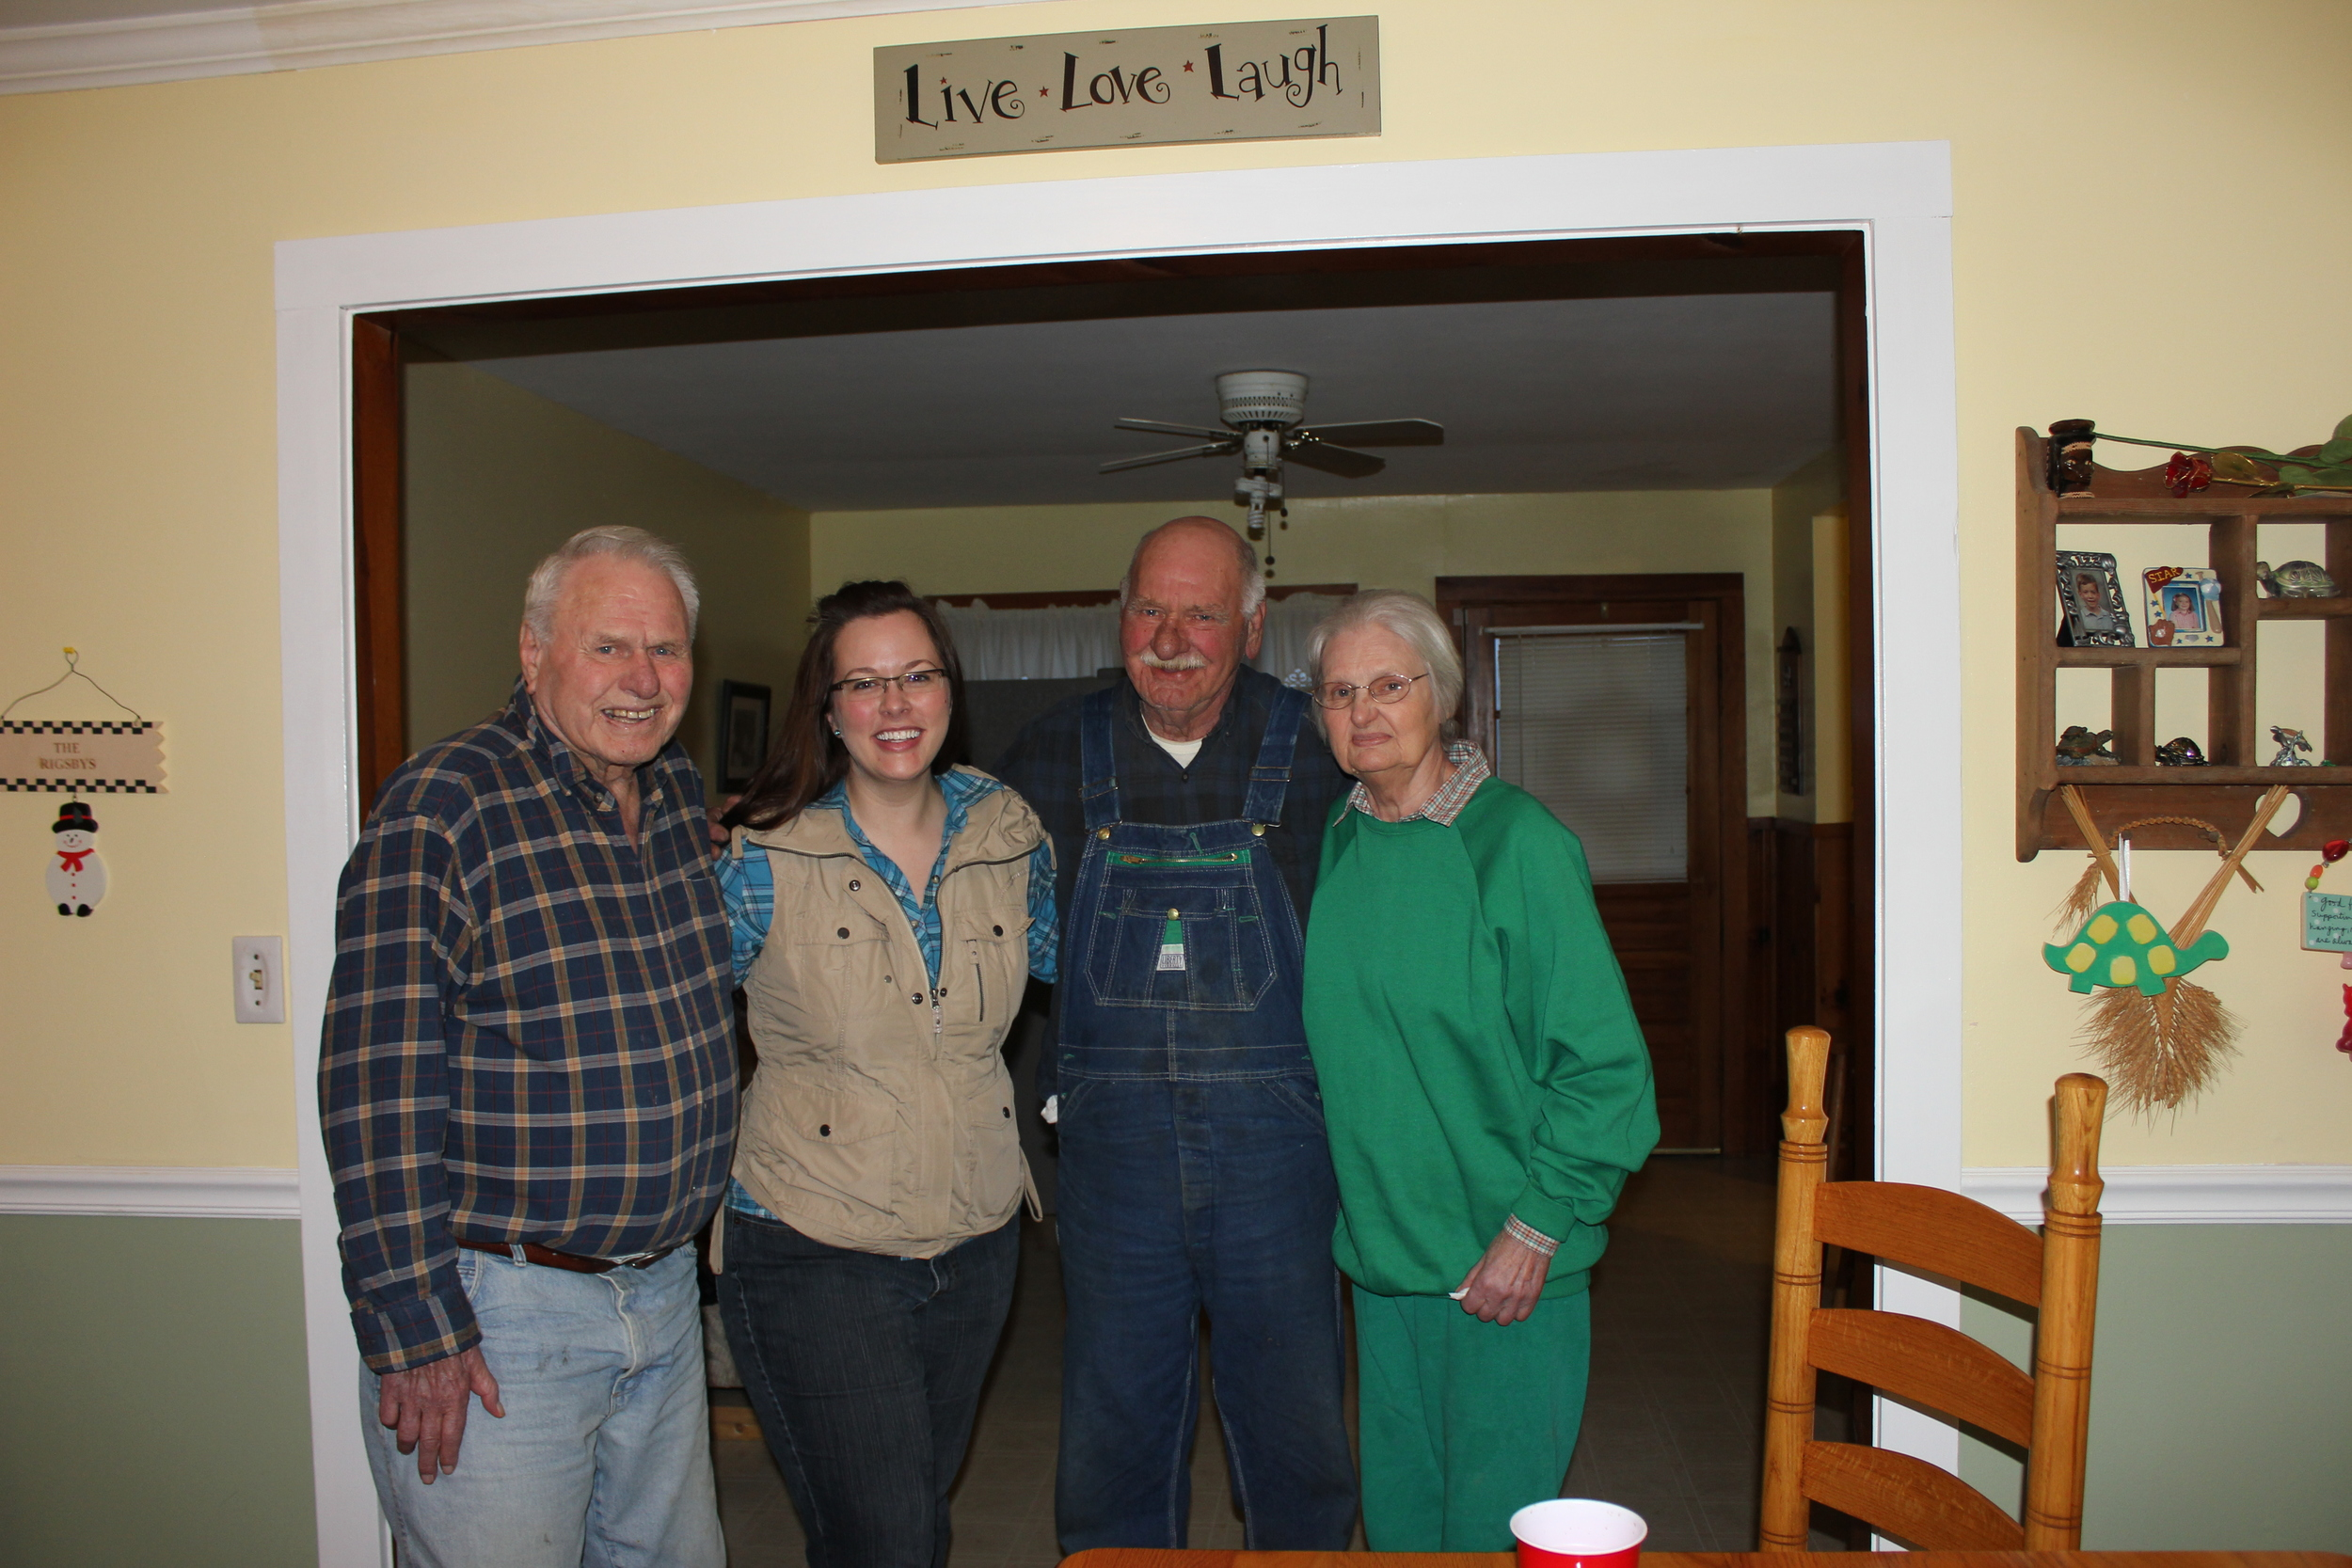 With my Dad's brothers and sisters. They are a spittin' image of my Dad. And I adore the fact that all four of us are wearing plaid flannel.